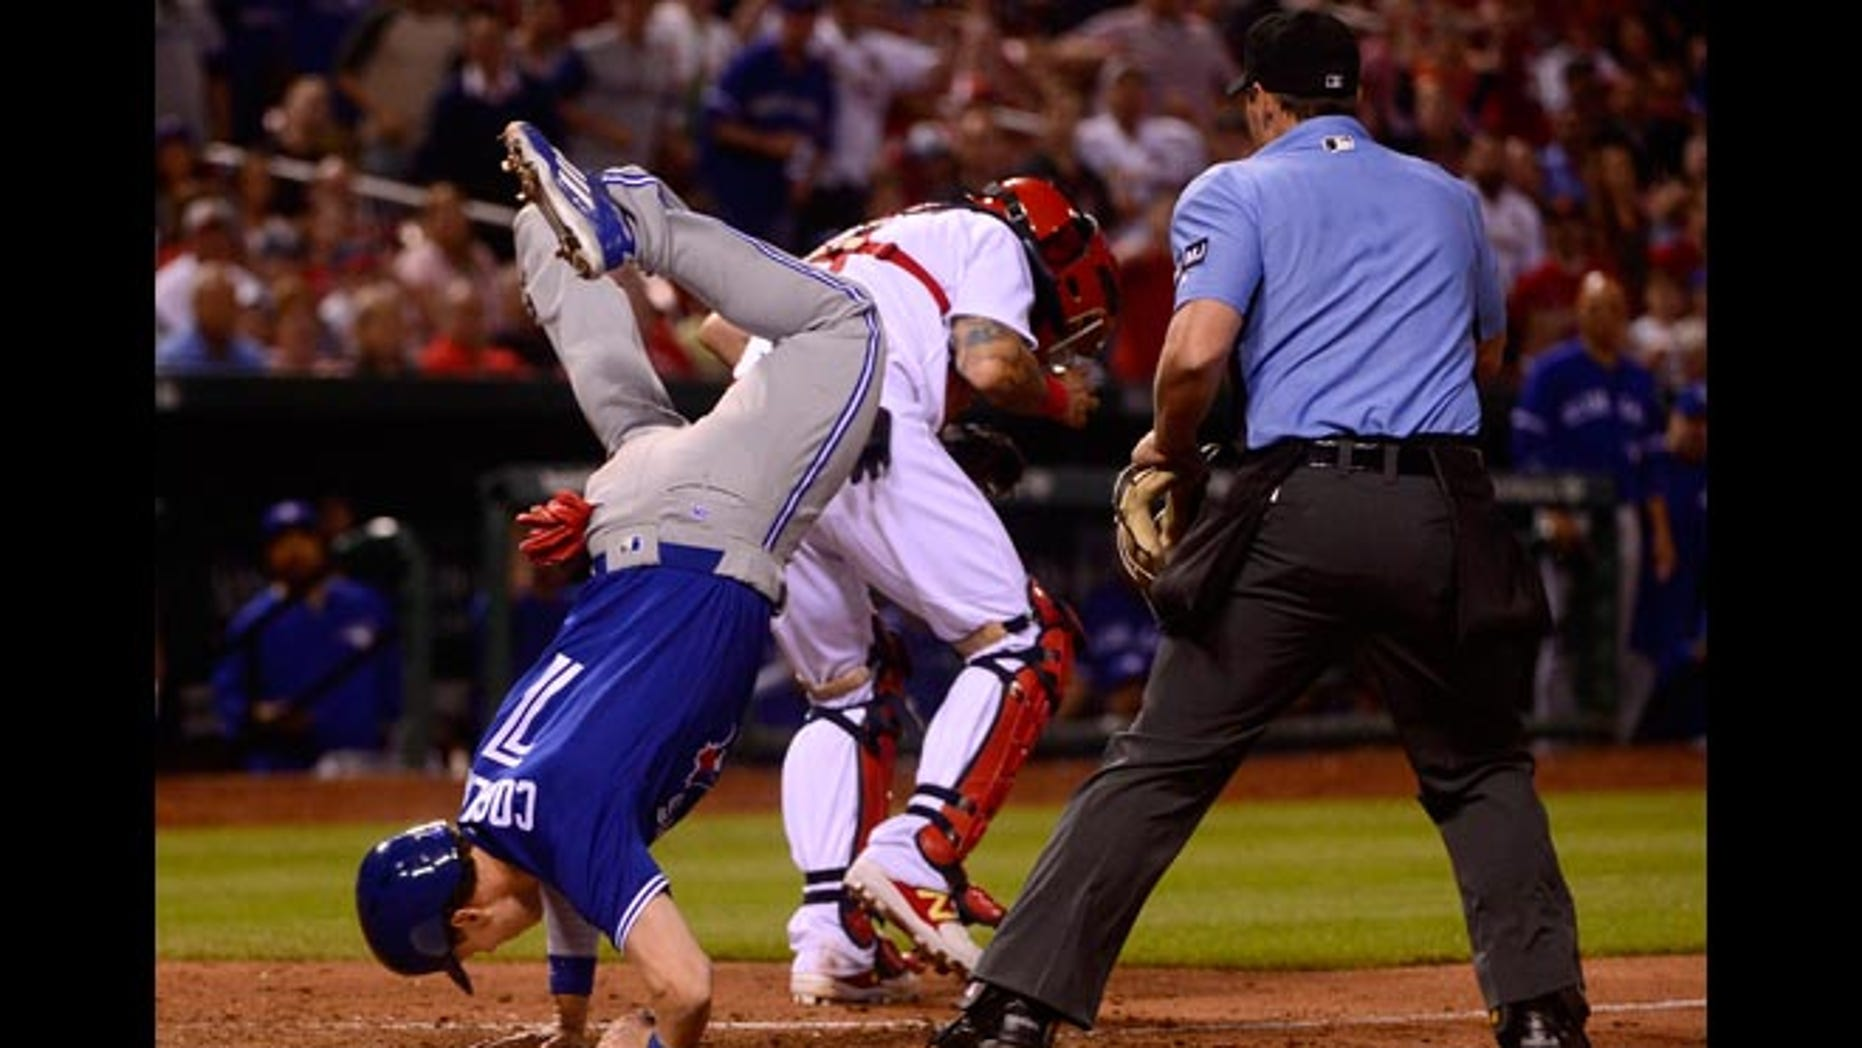 Chris Coghlan touches home plate after leaping over Yadier Molina.